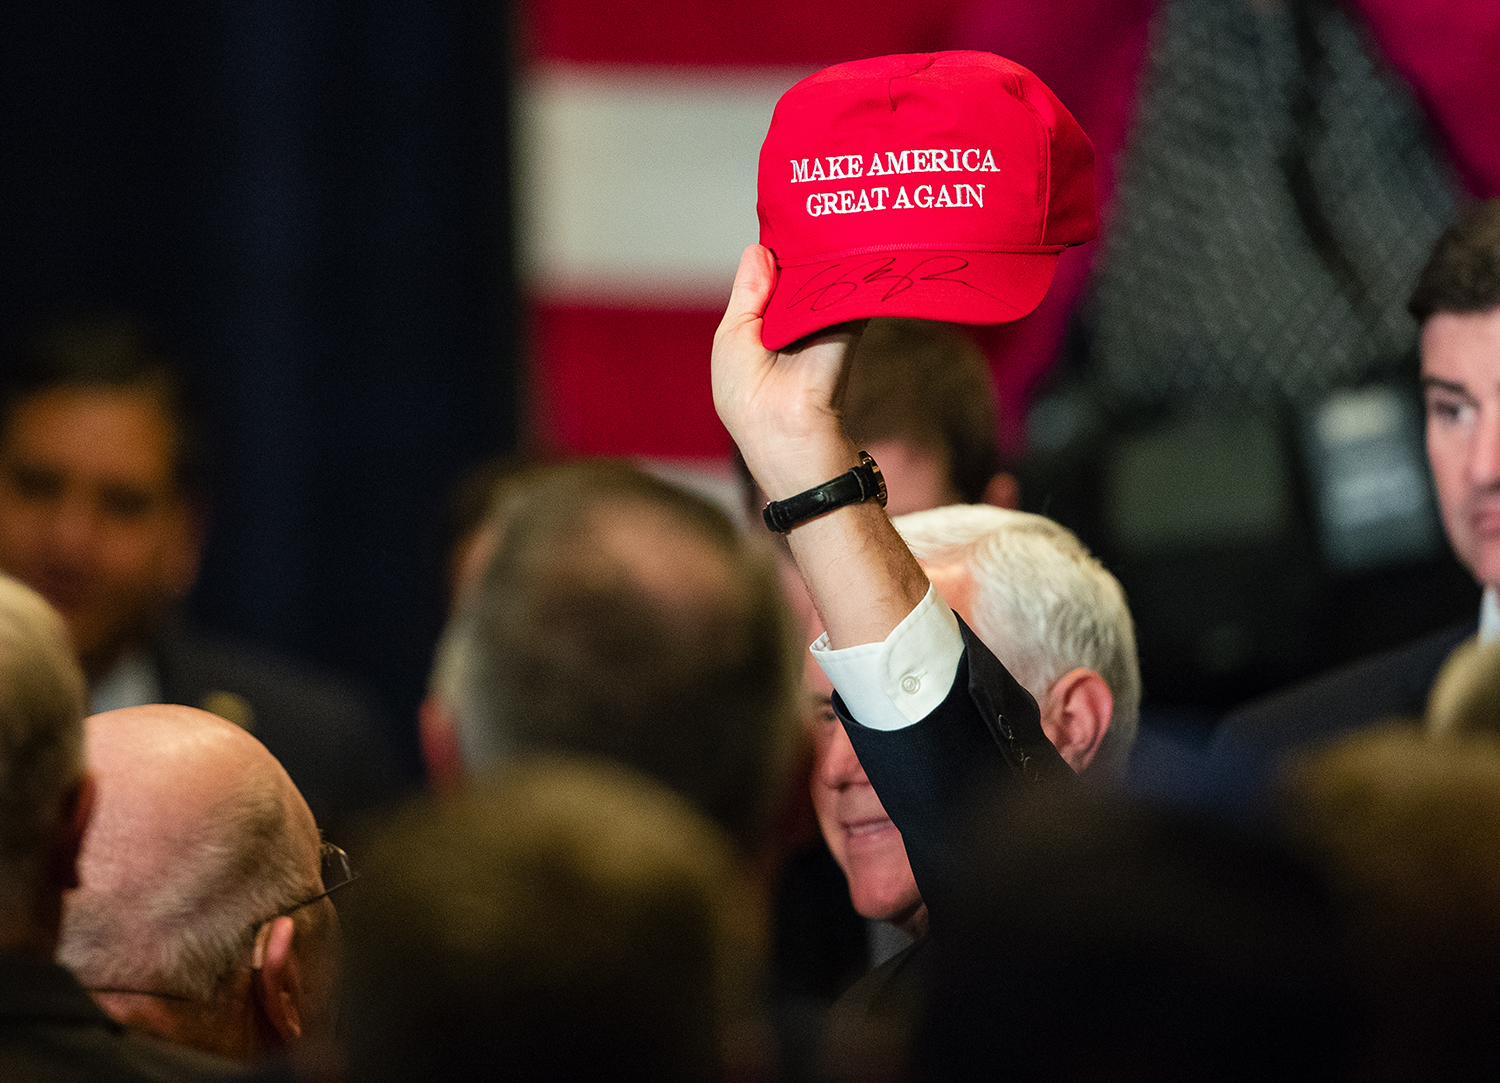 Vice President Mike Pence holds an autographed Make America Great Again hat high as he campaigns for Rodney Davis, R-Taylorville, at Panther Creek Country Club in Springfield, Ill., Friday, Oct. 12, 2018. Davis is locked in a nationally watched race for the 13th Congressional District against Democrat Betsy Dirksen Londrigan of Springfield.  [Ted Schurter/The State Journal-Register]